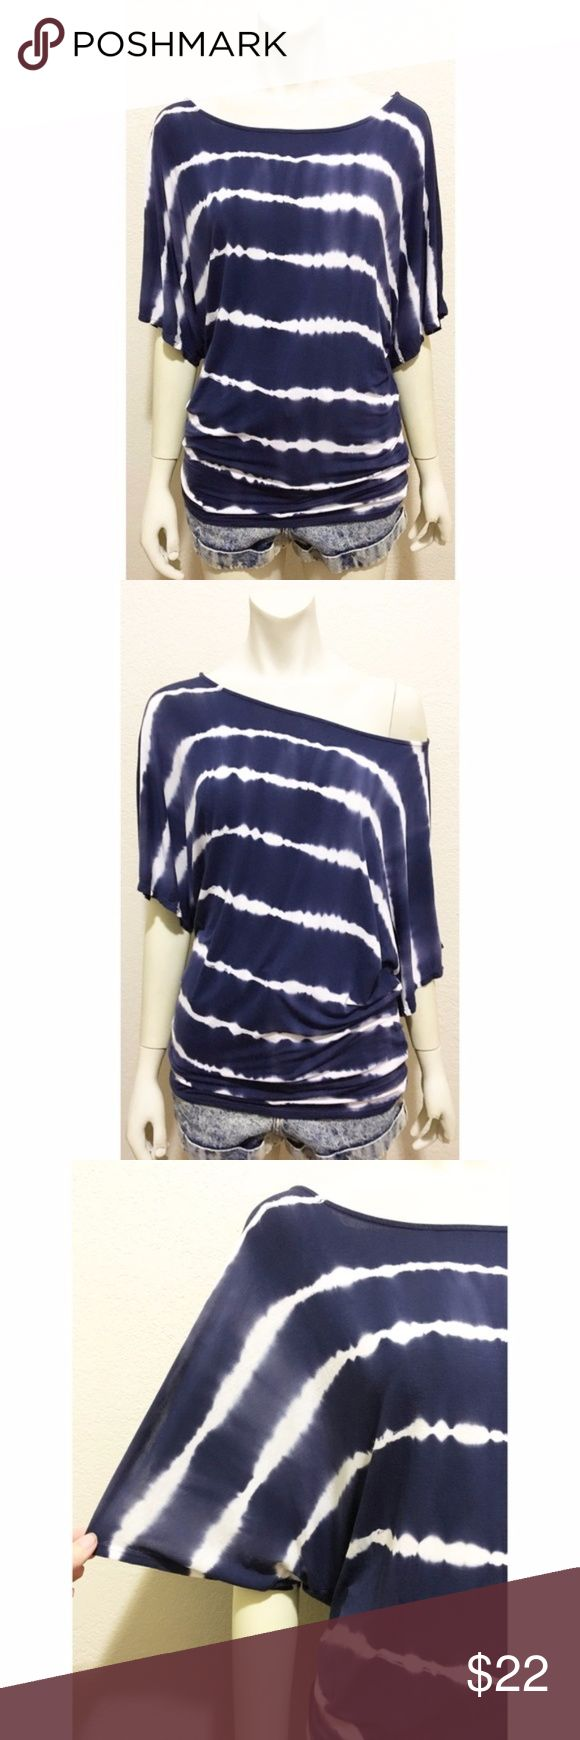 Michael Stars OSFM Blue & White Tie-Dye Batwing T Good used condition navy blue and white tie-dyed tunic t-shirt by Michael Stars. One size fits most. Super soft and stretchy jersey knit feel. 95% rayon/5% spandex. For reference my mannequin is a size 4. I am an 18 and it fits. I would recommend for sizes S-XL. Batwing sleeves with an oversized boatneck. You can wear this off one shoulder if you like. Very small hole on left shoulder. Very little pilling. All measurements are approximate and…